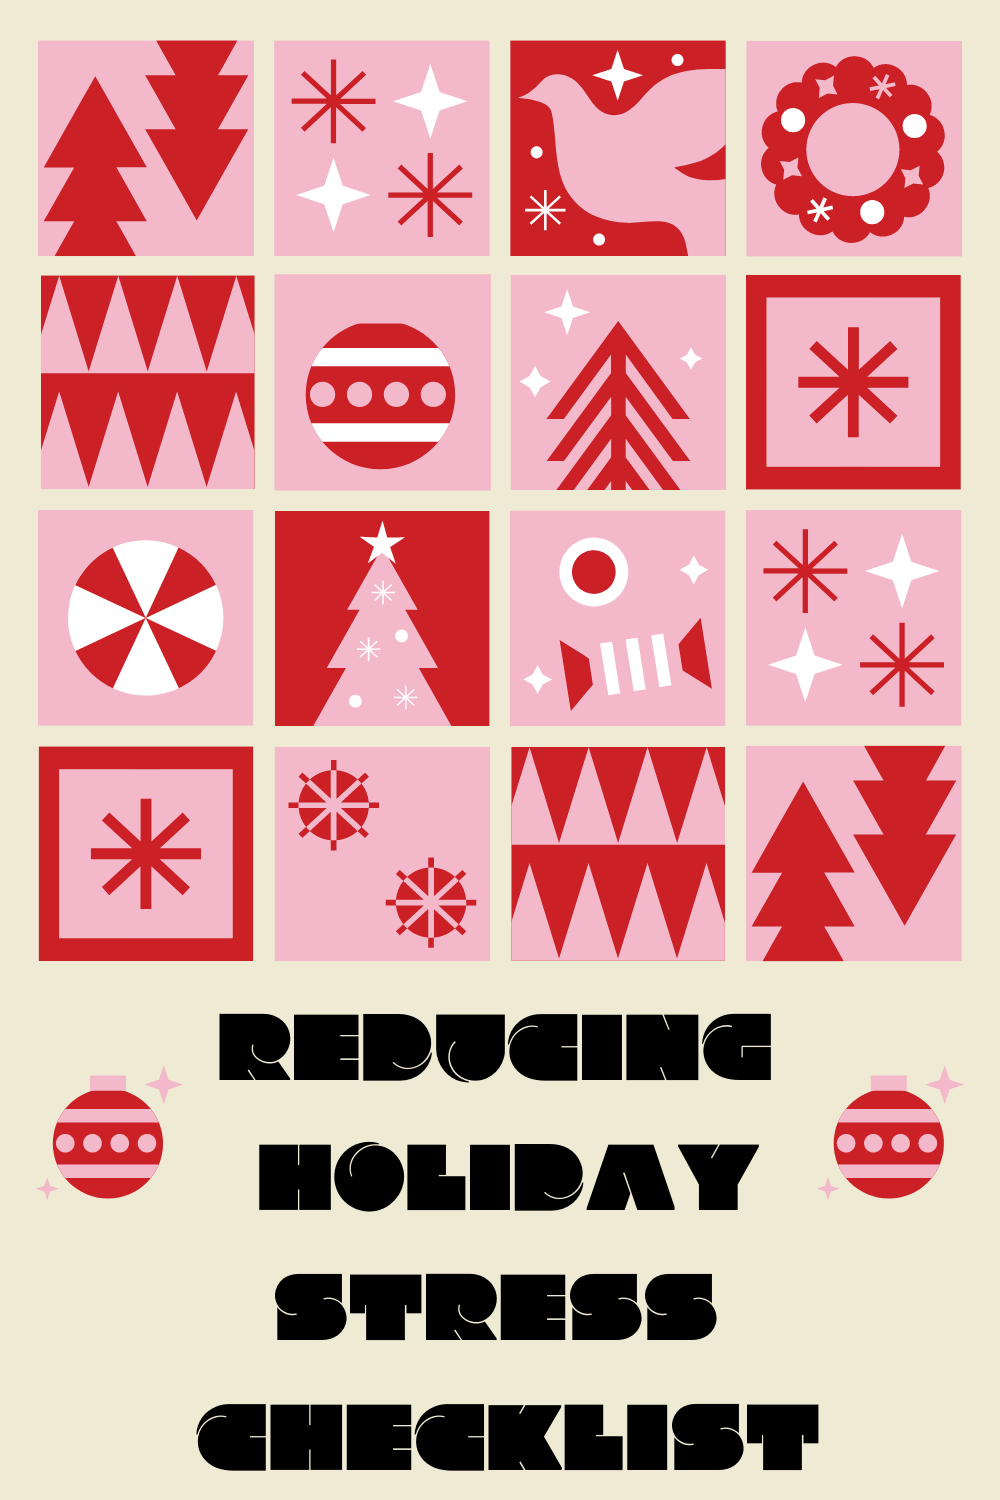 Reduce Holiday Stress Checklist